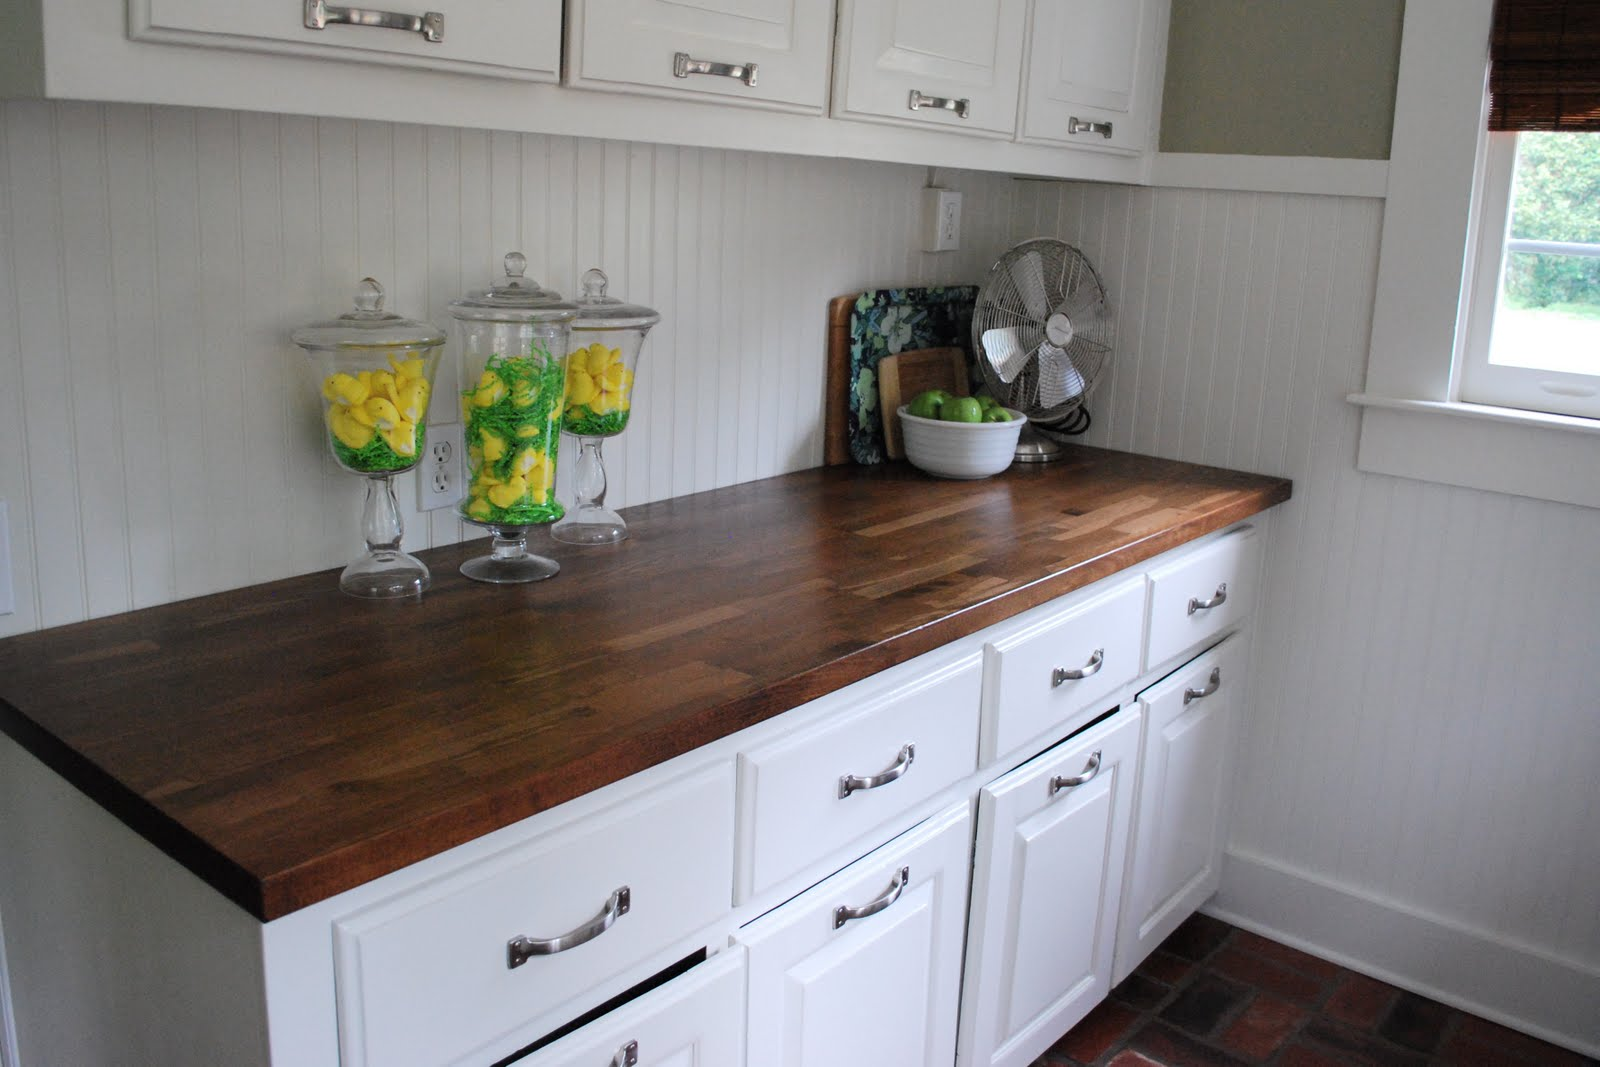 Do Up Your Kitchen With Well Designed Butcher Block Countertops From Ikea : Elegant Butcher Block Countertops